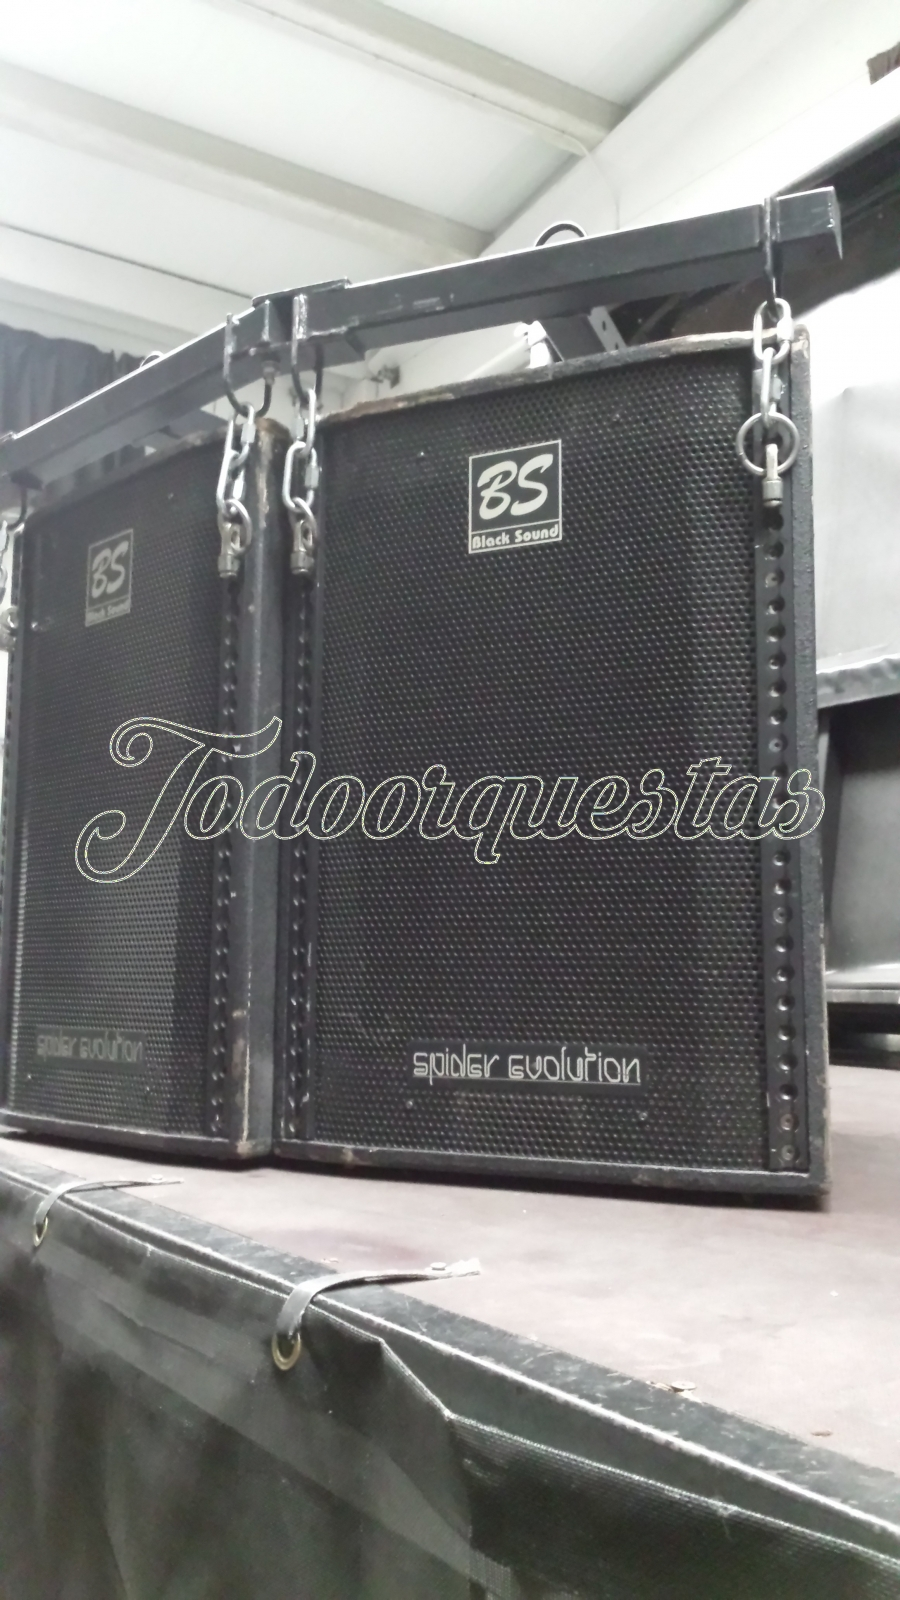 Vendo Equipo de Sonido Black Sound Spider Evoluttion